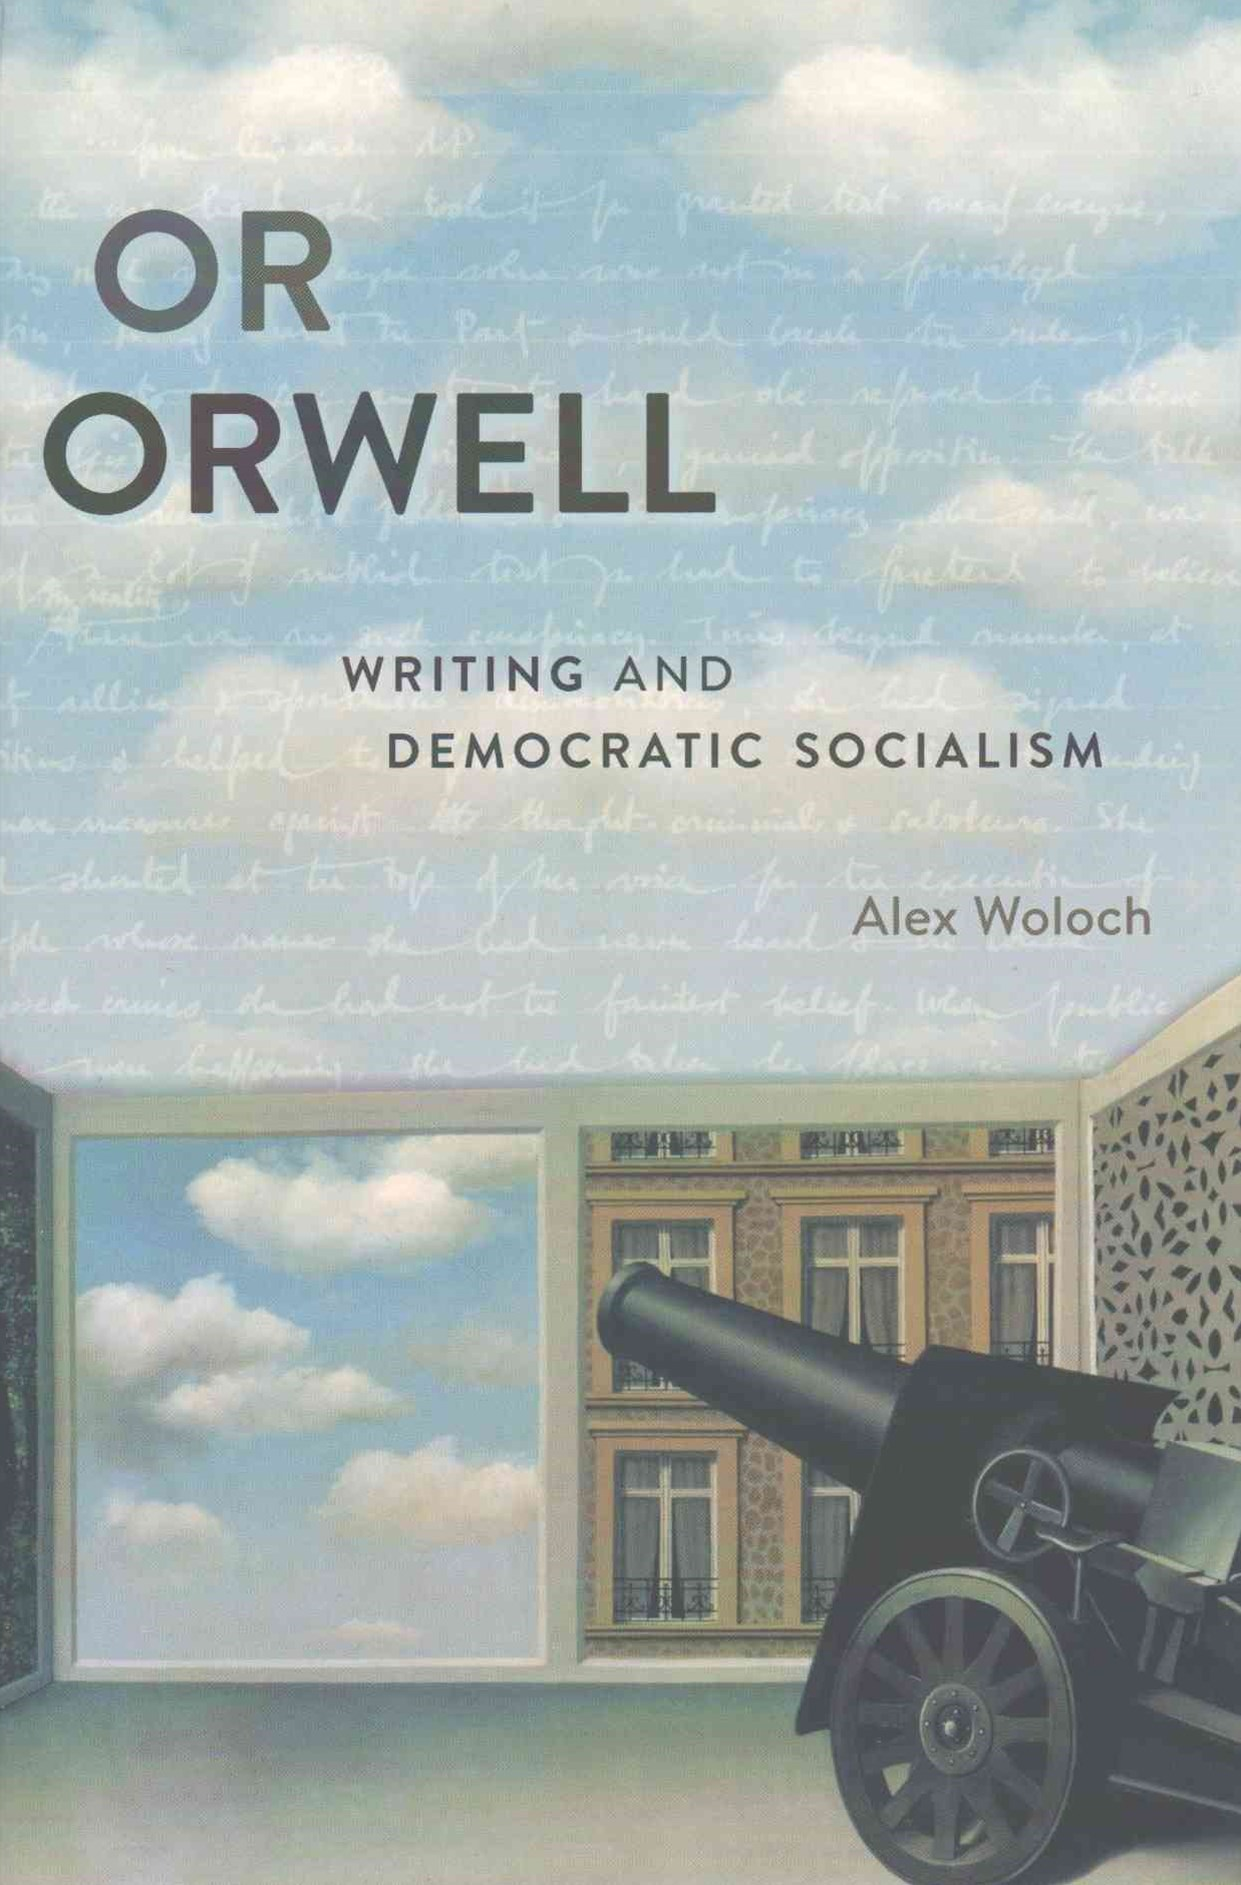 Or Orwell